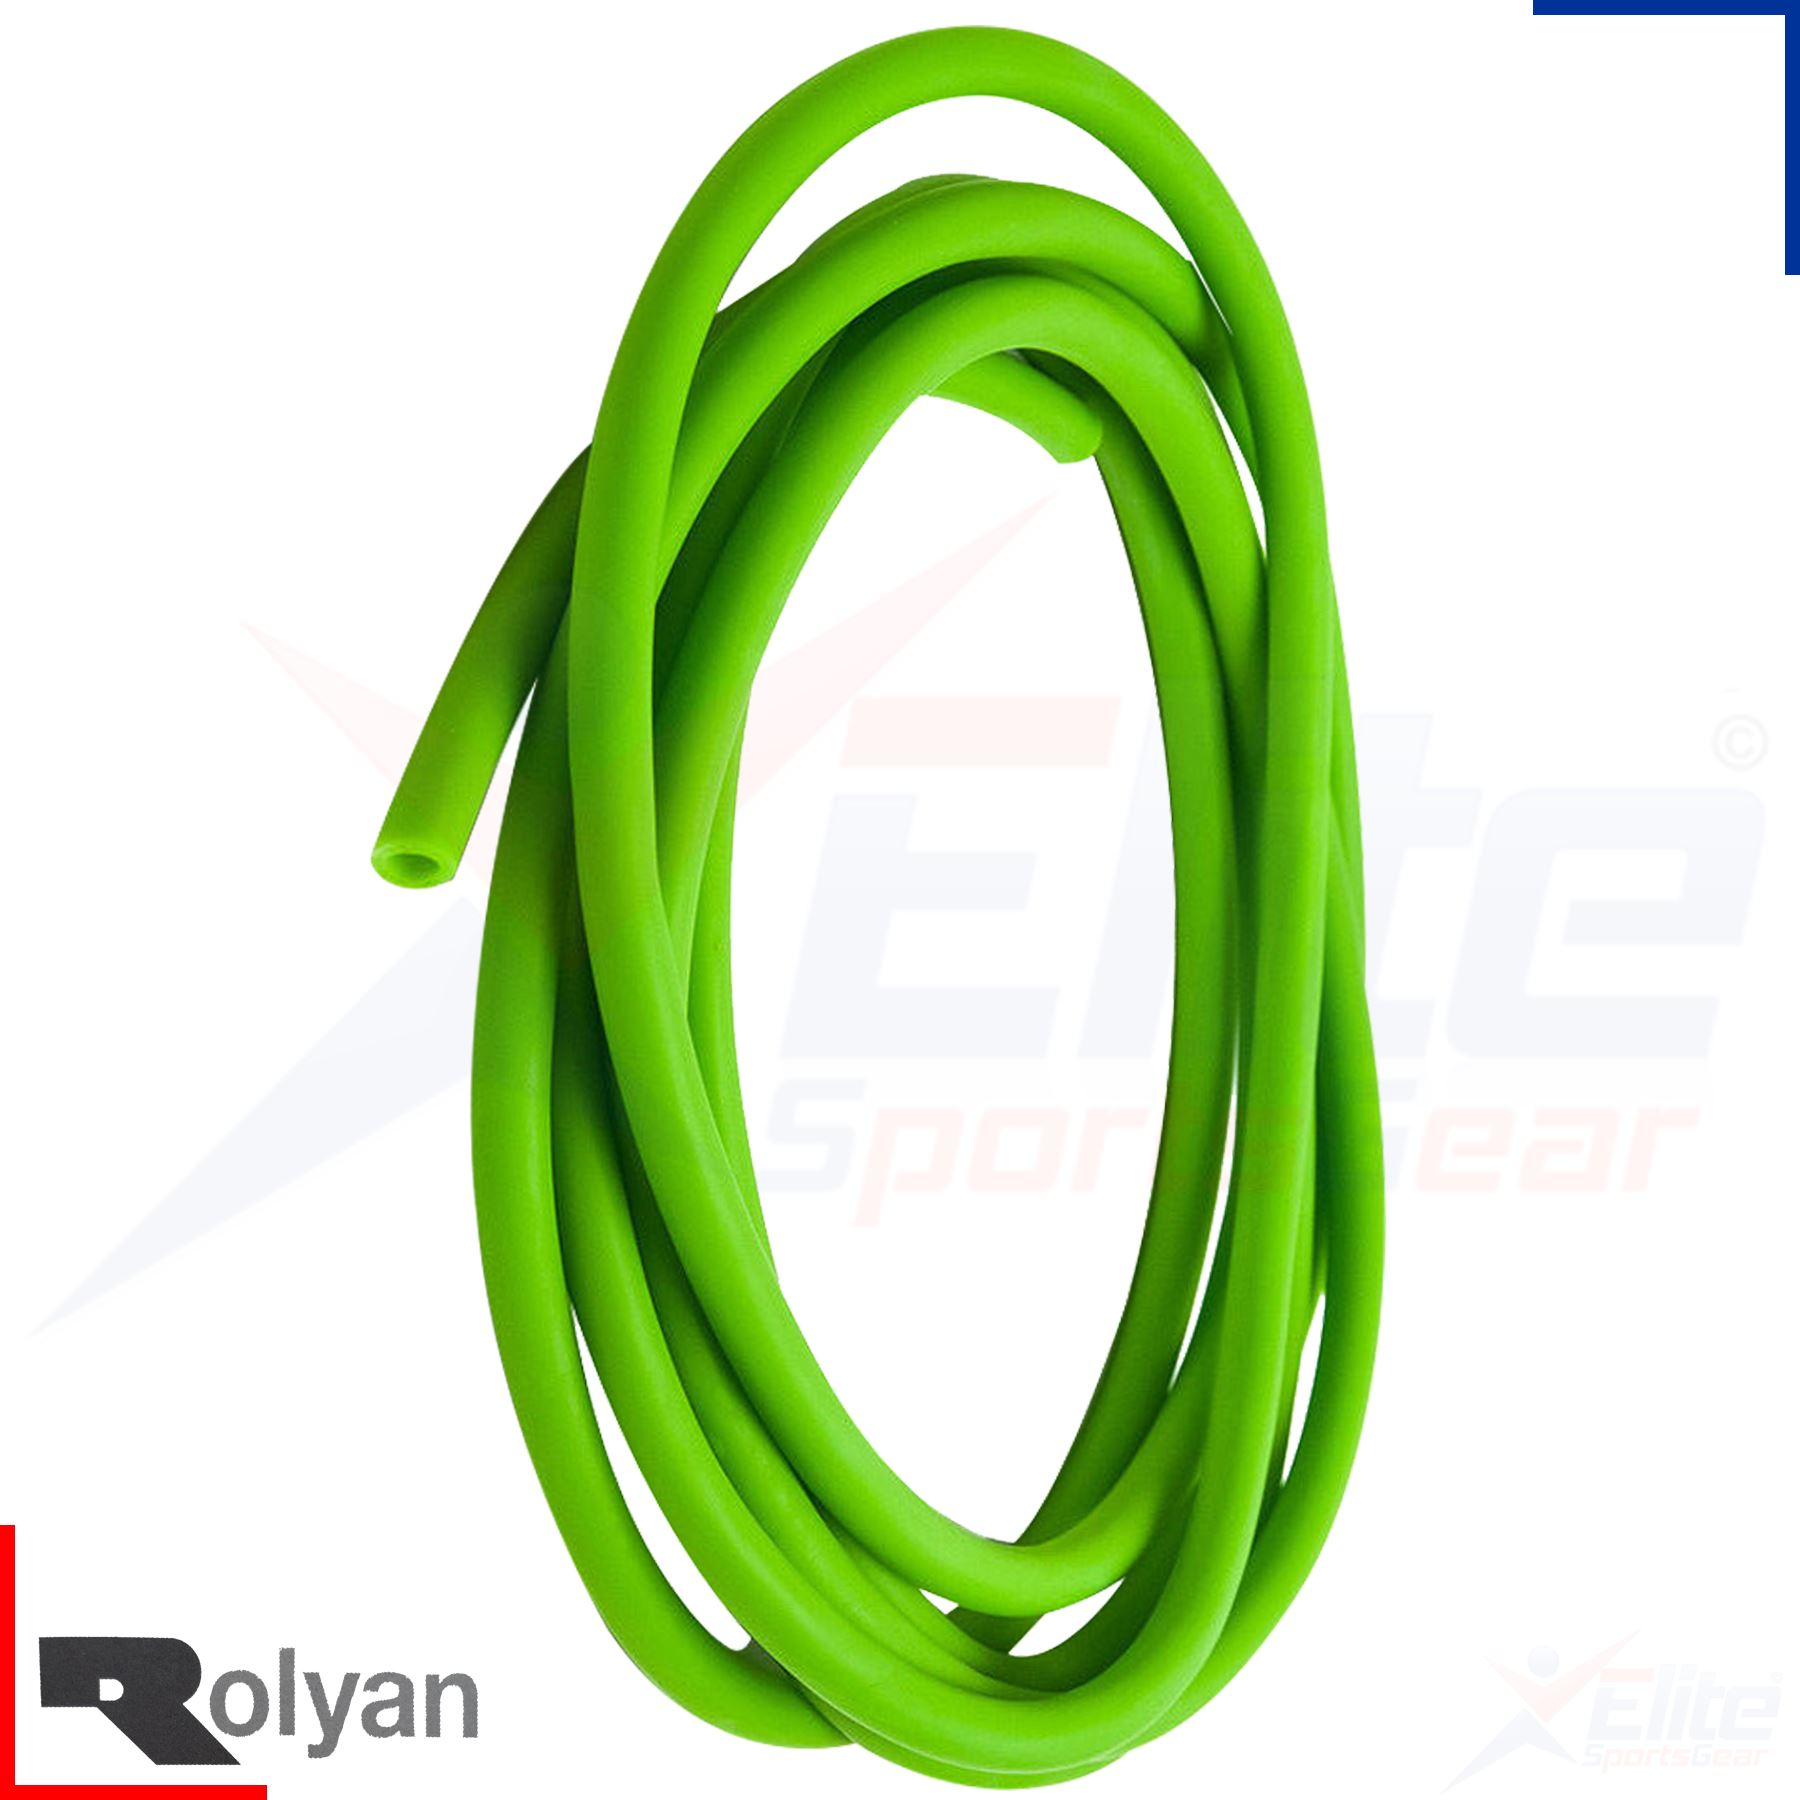 Rubber Exercise Tubing Bands